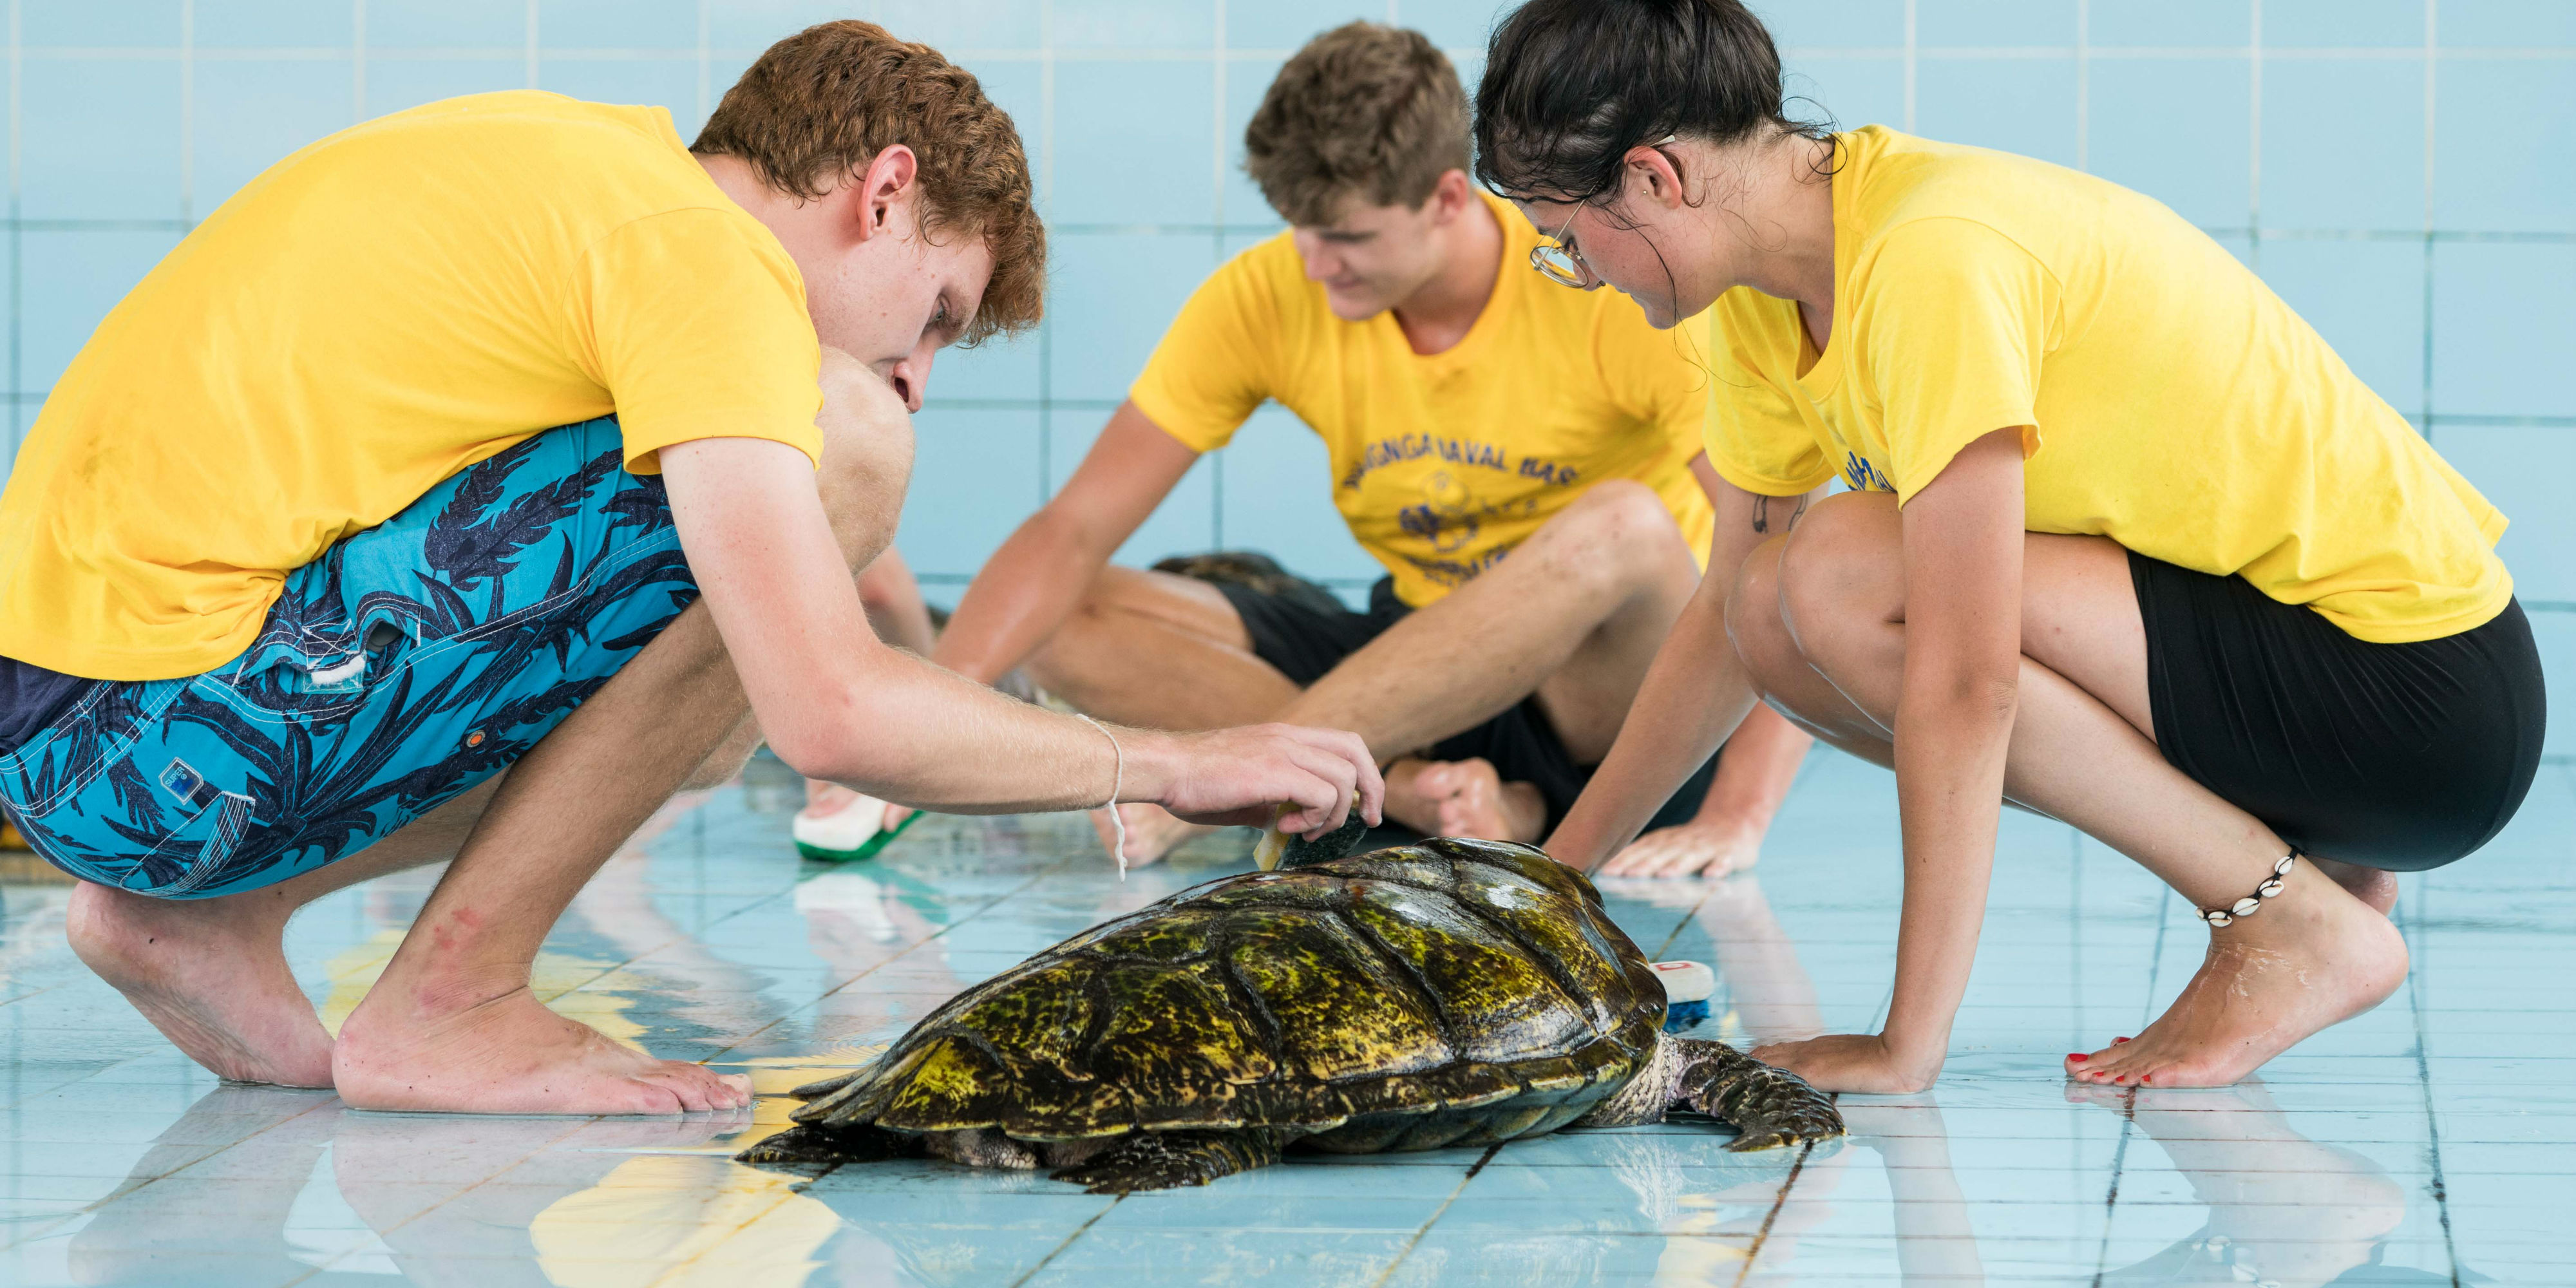 Participants carefully scrub the tank, and shell of a turtle   donate or volunteer